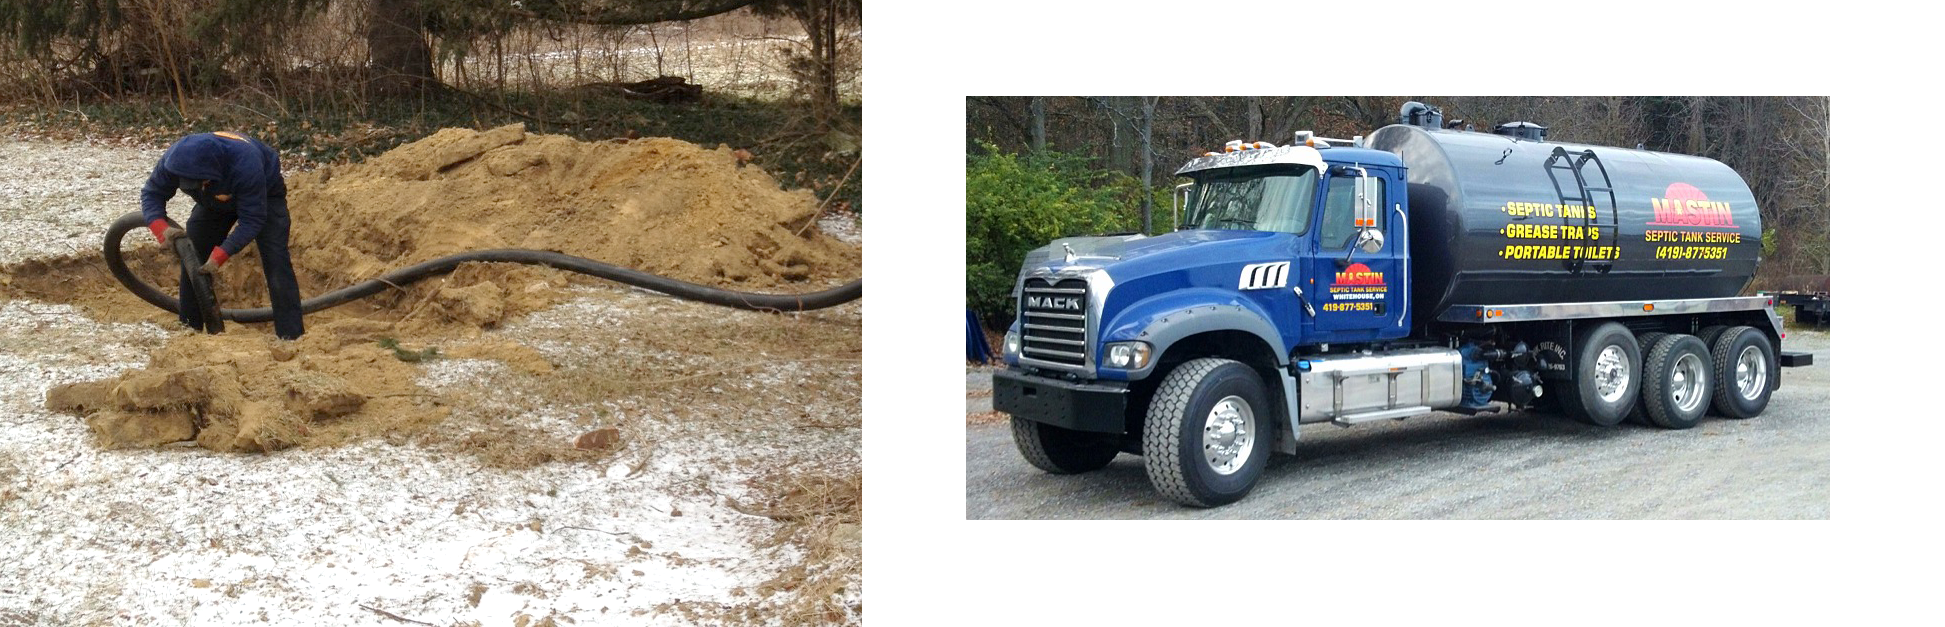 Septic System Service   Water Well Service   Septic Tank